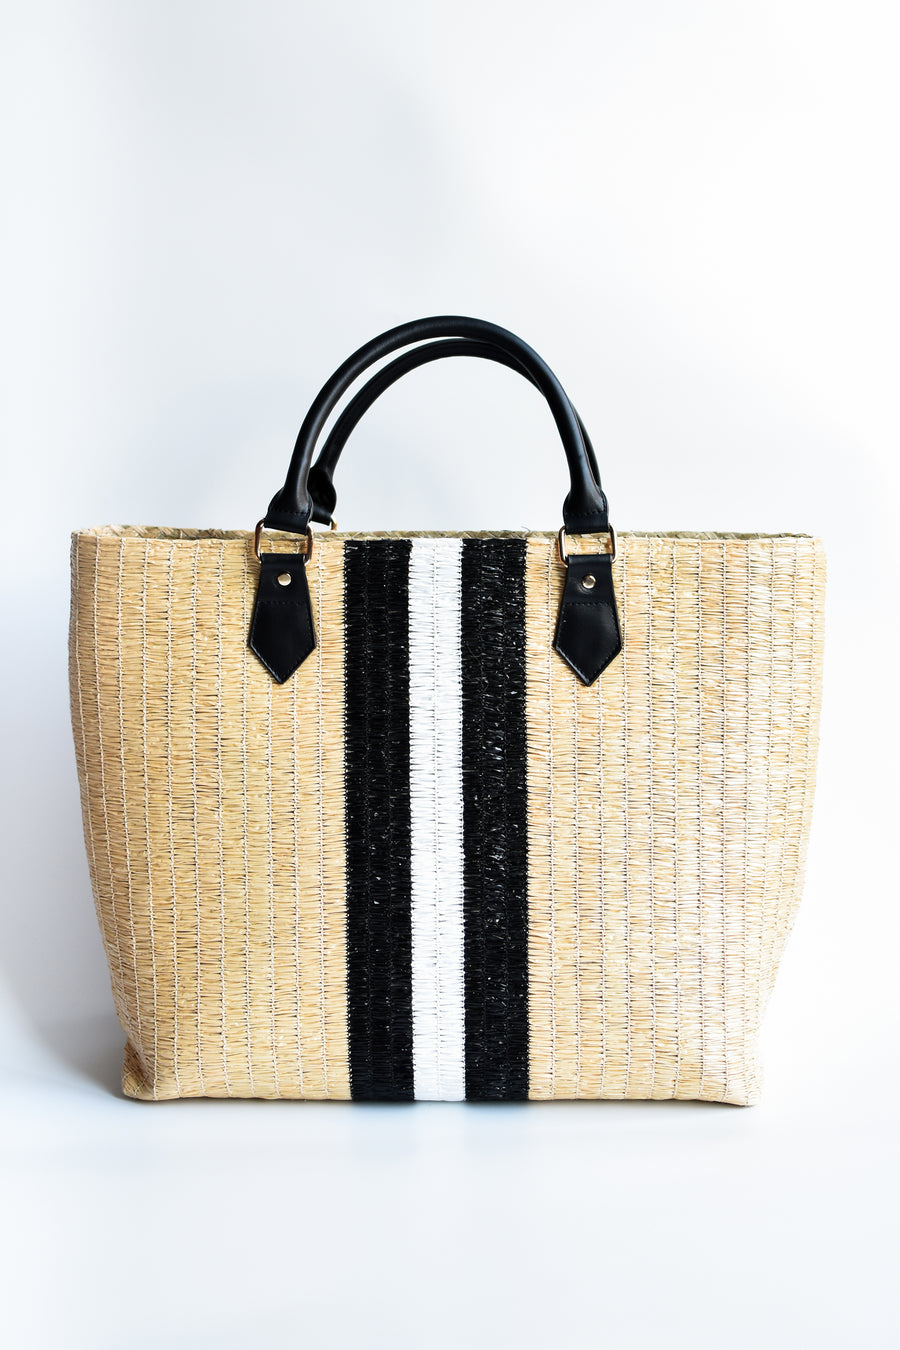 Benicia straw tote bag with black leather handles and black & white center stripe.